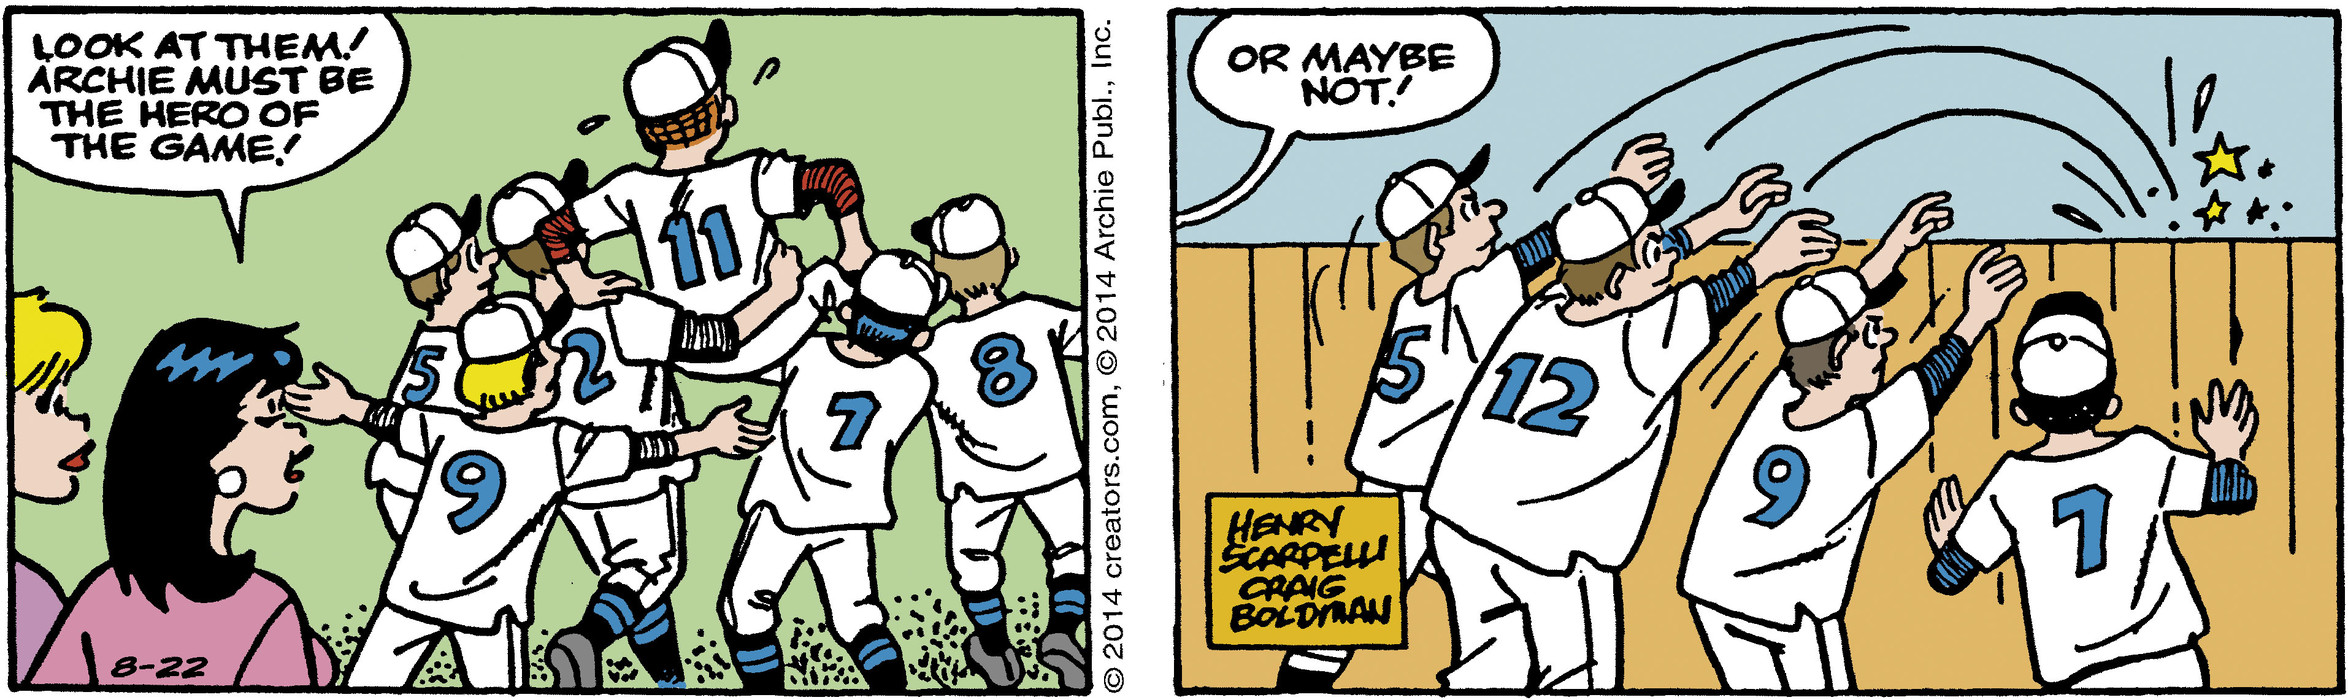 Archie for Aug 22, 2014